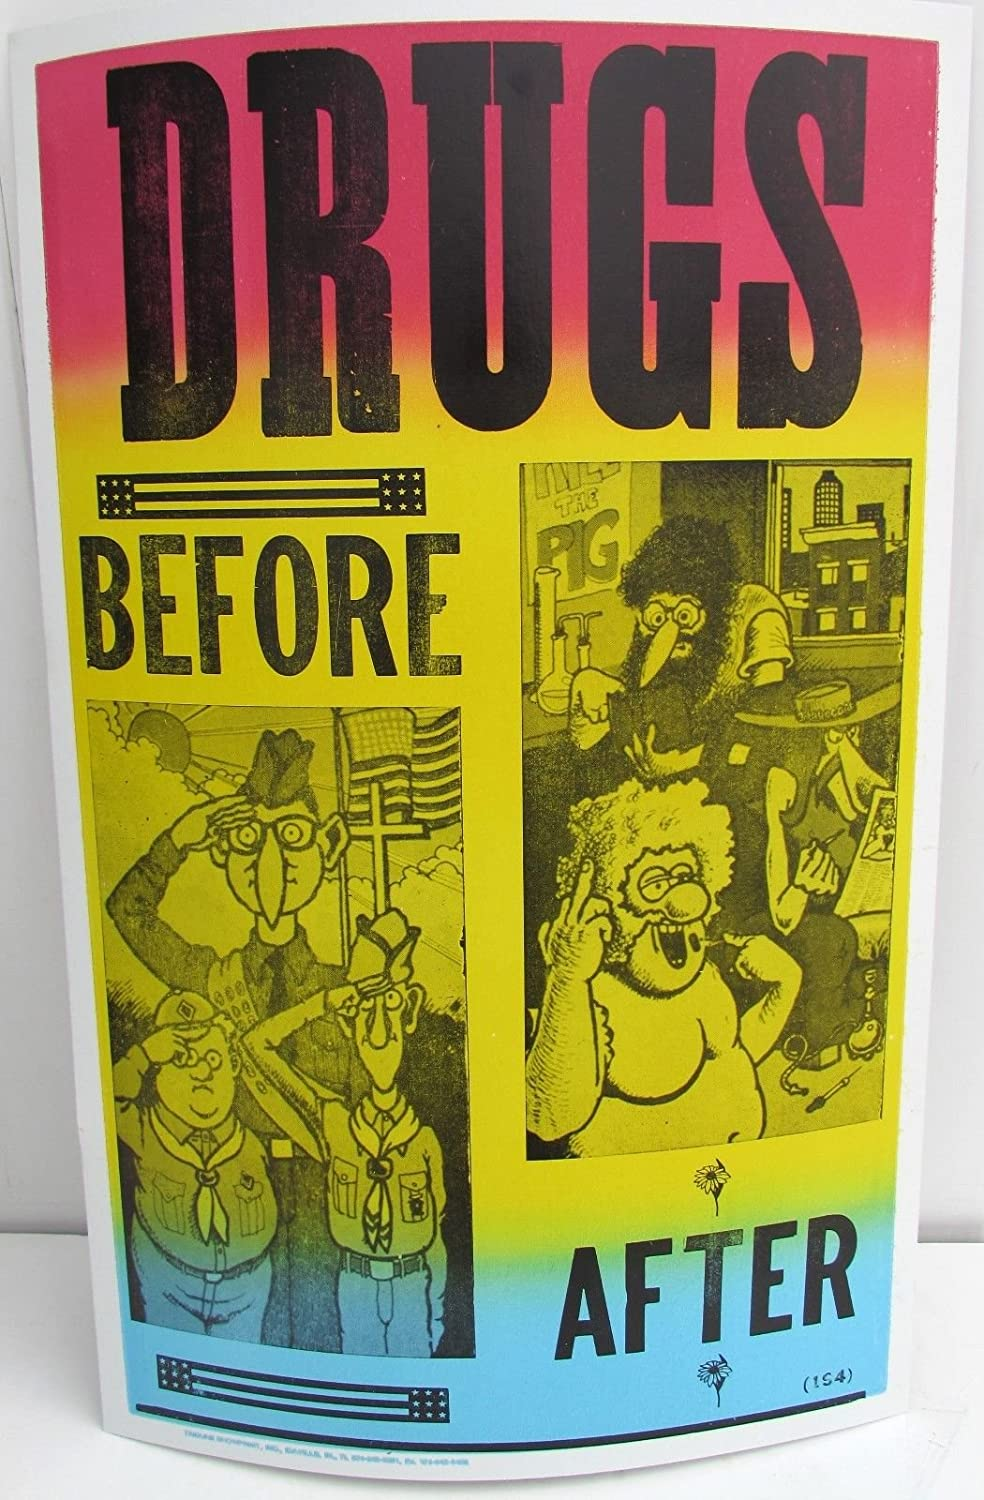 Amazon.com: VINTAGE 60S DRUGS BEFORE AFTER POSTER pot weed pothead ...